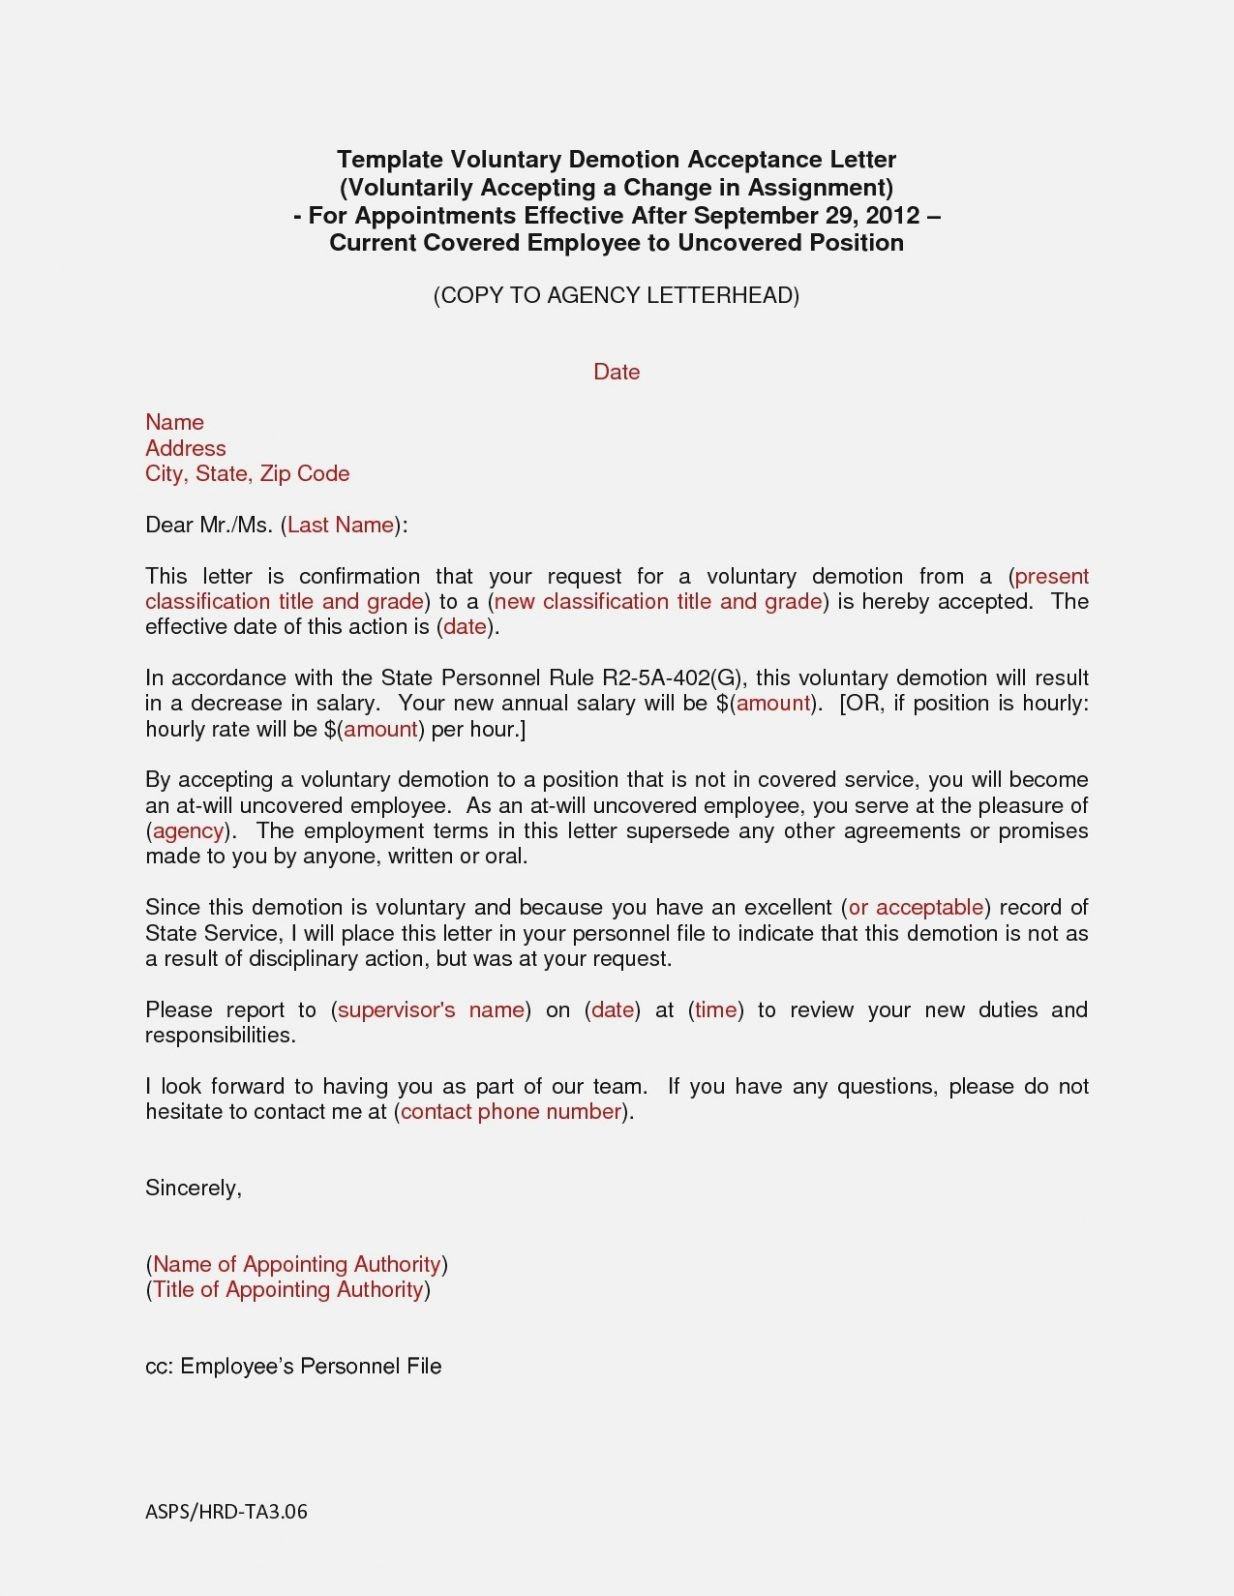 Voluntary Demotion Letter Template Lovely Demotion Letter Template Voluntary Sample Fresh